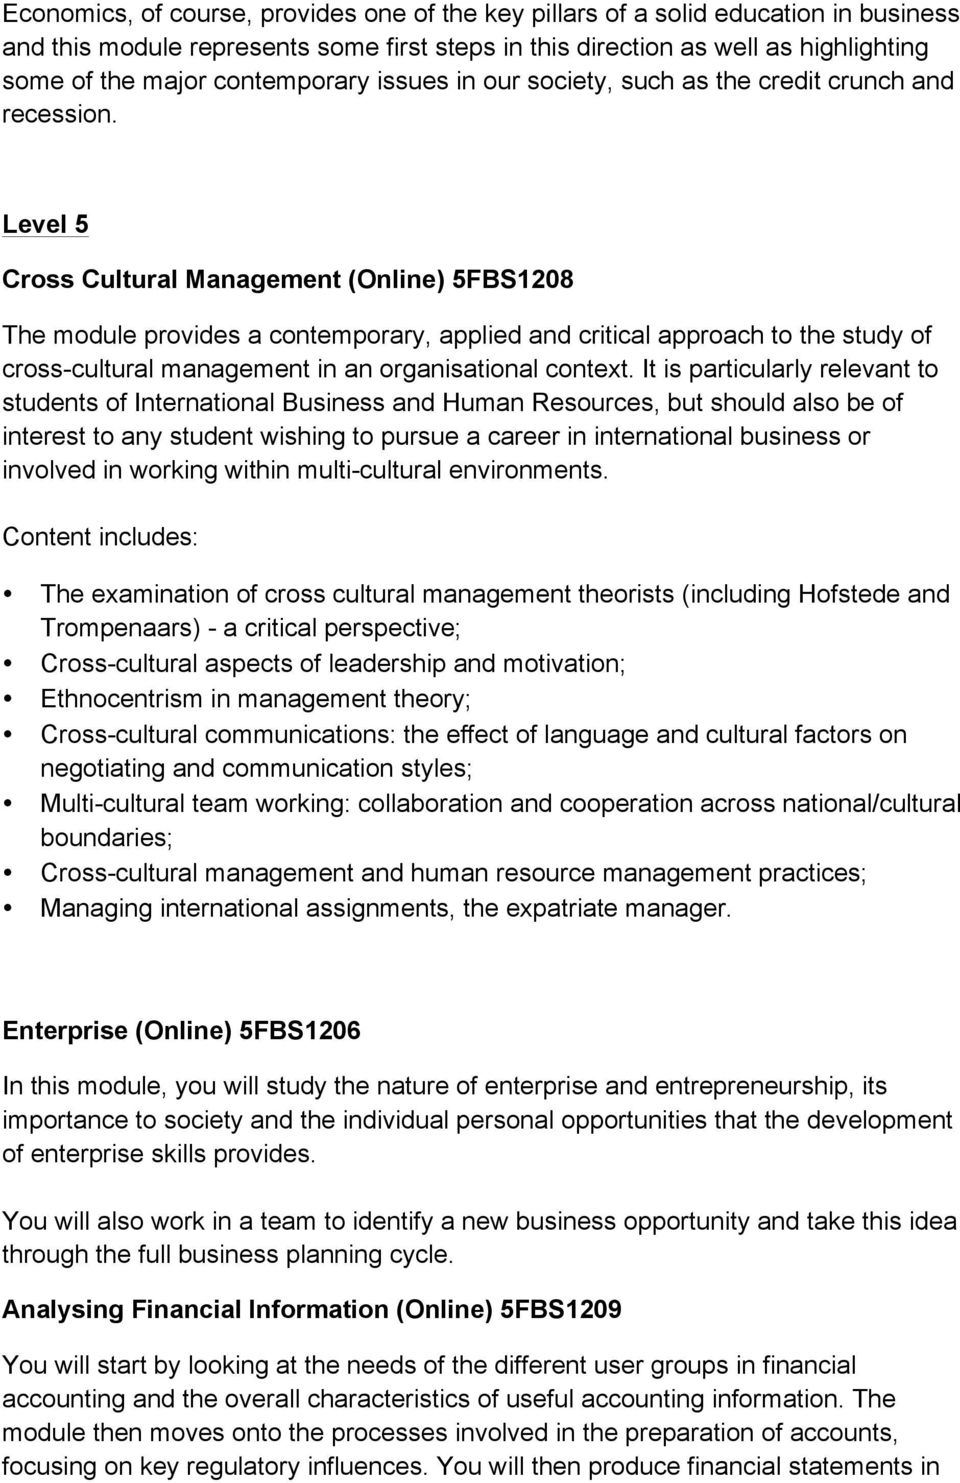 Level 5 Cross Cultural Management (Online) 5FBS1208 The module provides a contemporary, applied and critical approach to the study of cross-cultural management in an organisational context.